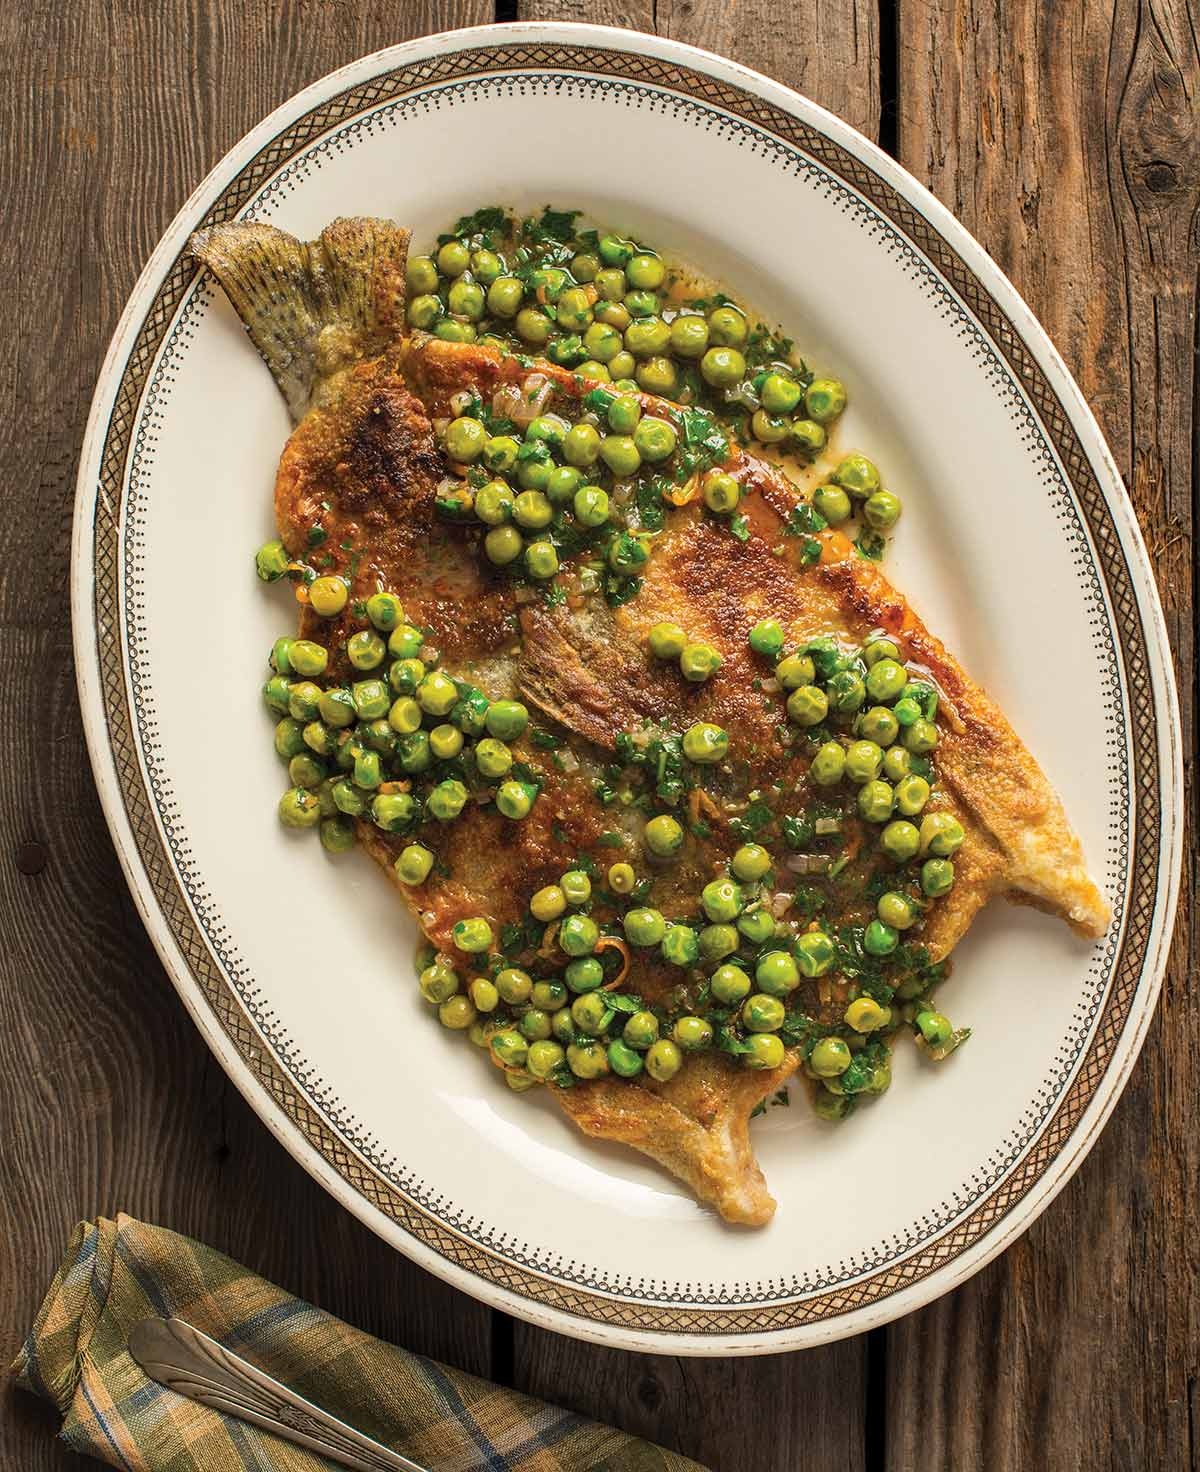 A plate of pan fried trout with peas